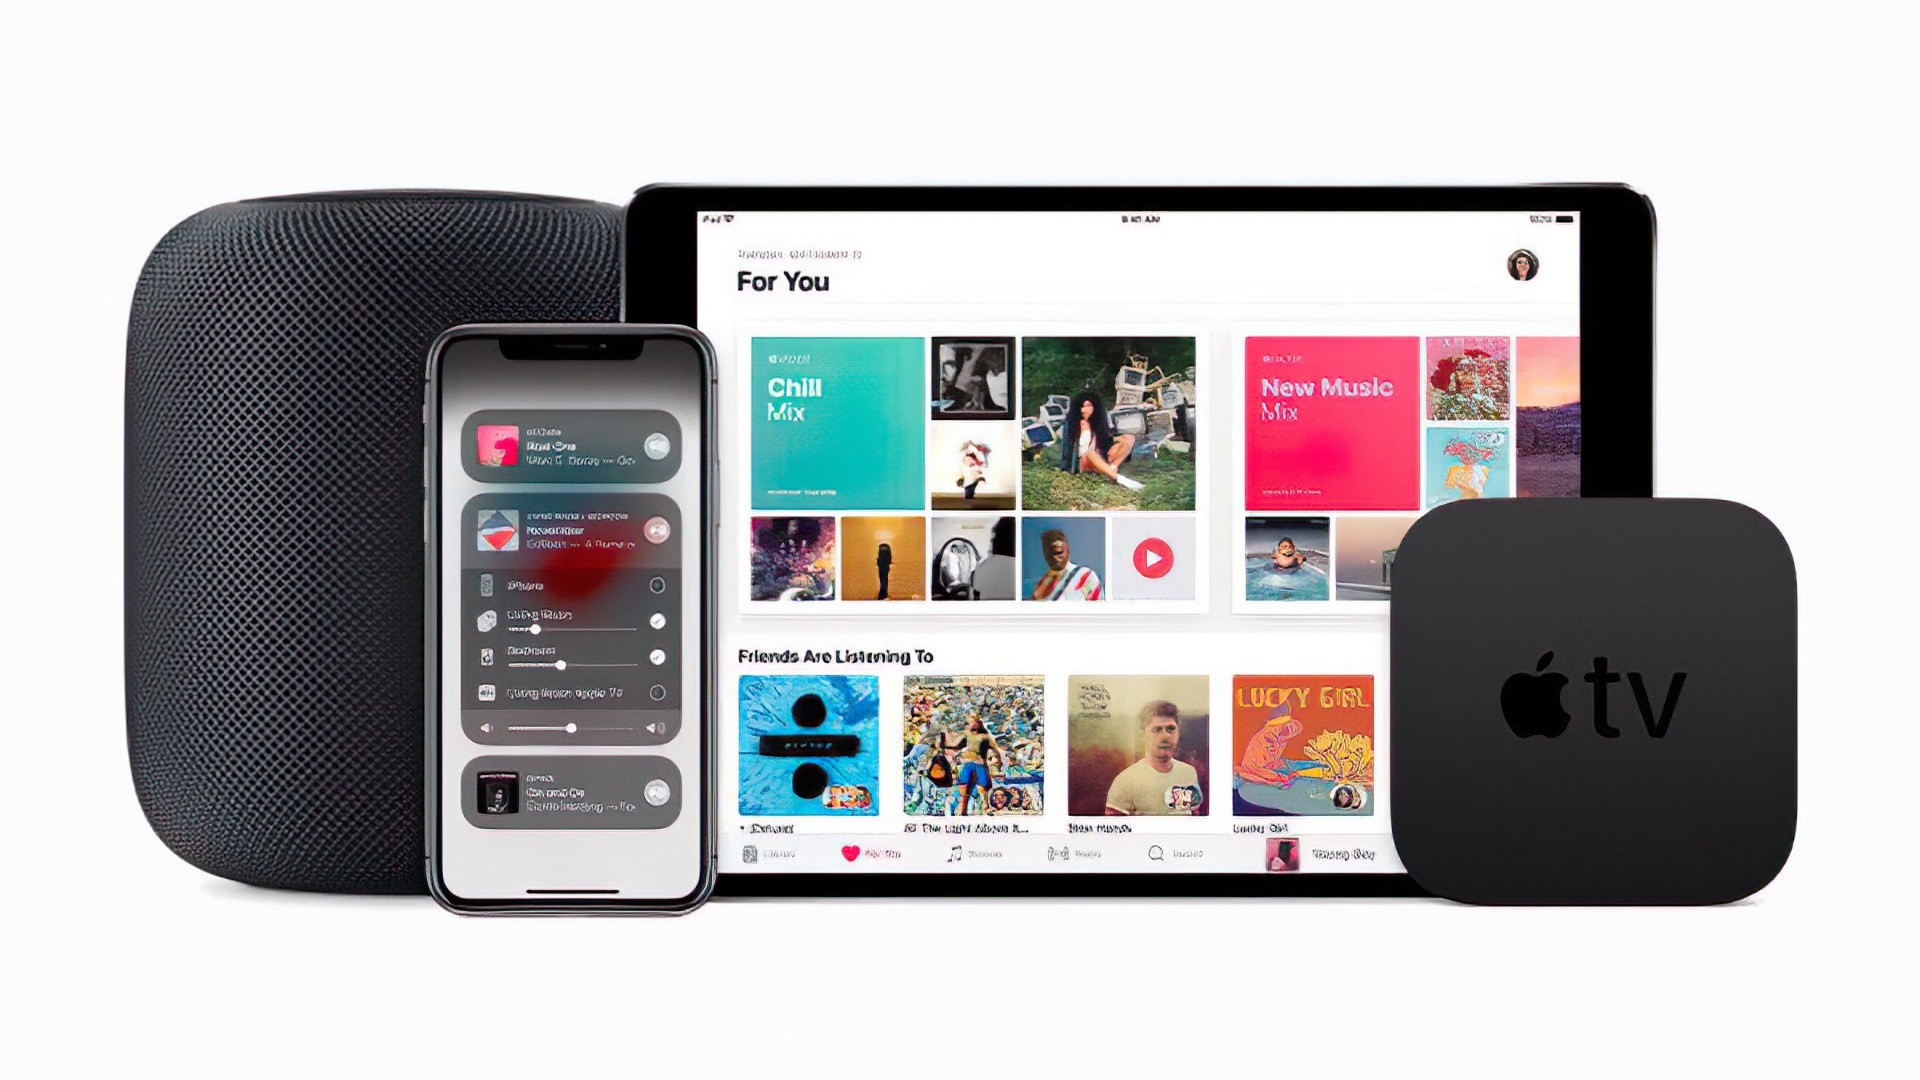 Apple, Iphone, Ipad, Apple Tv, Apple Music, Bundle, Homepod